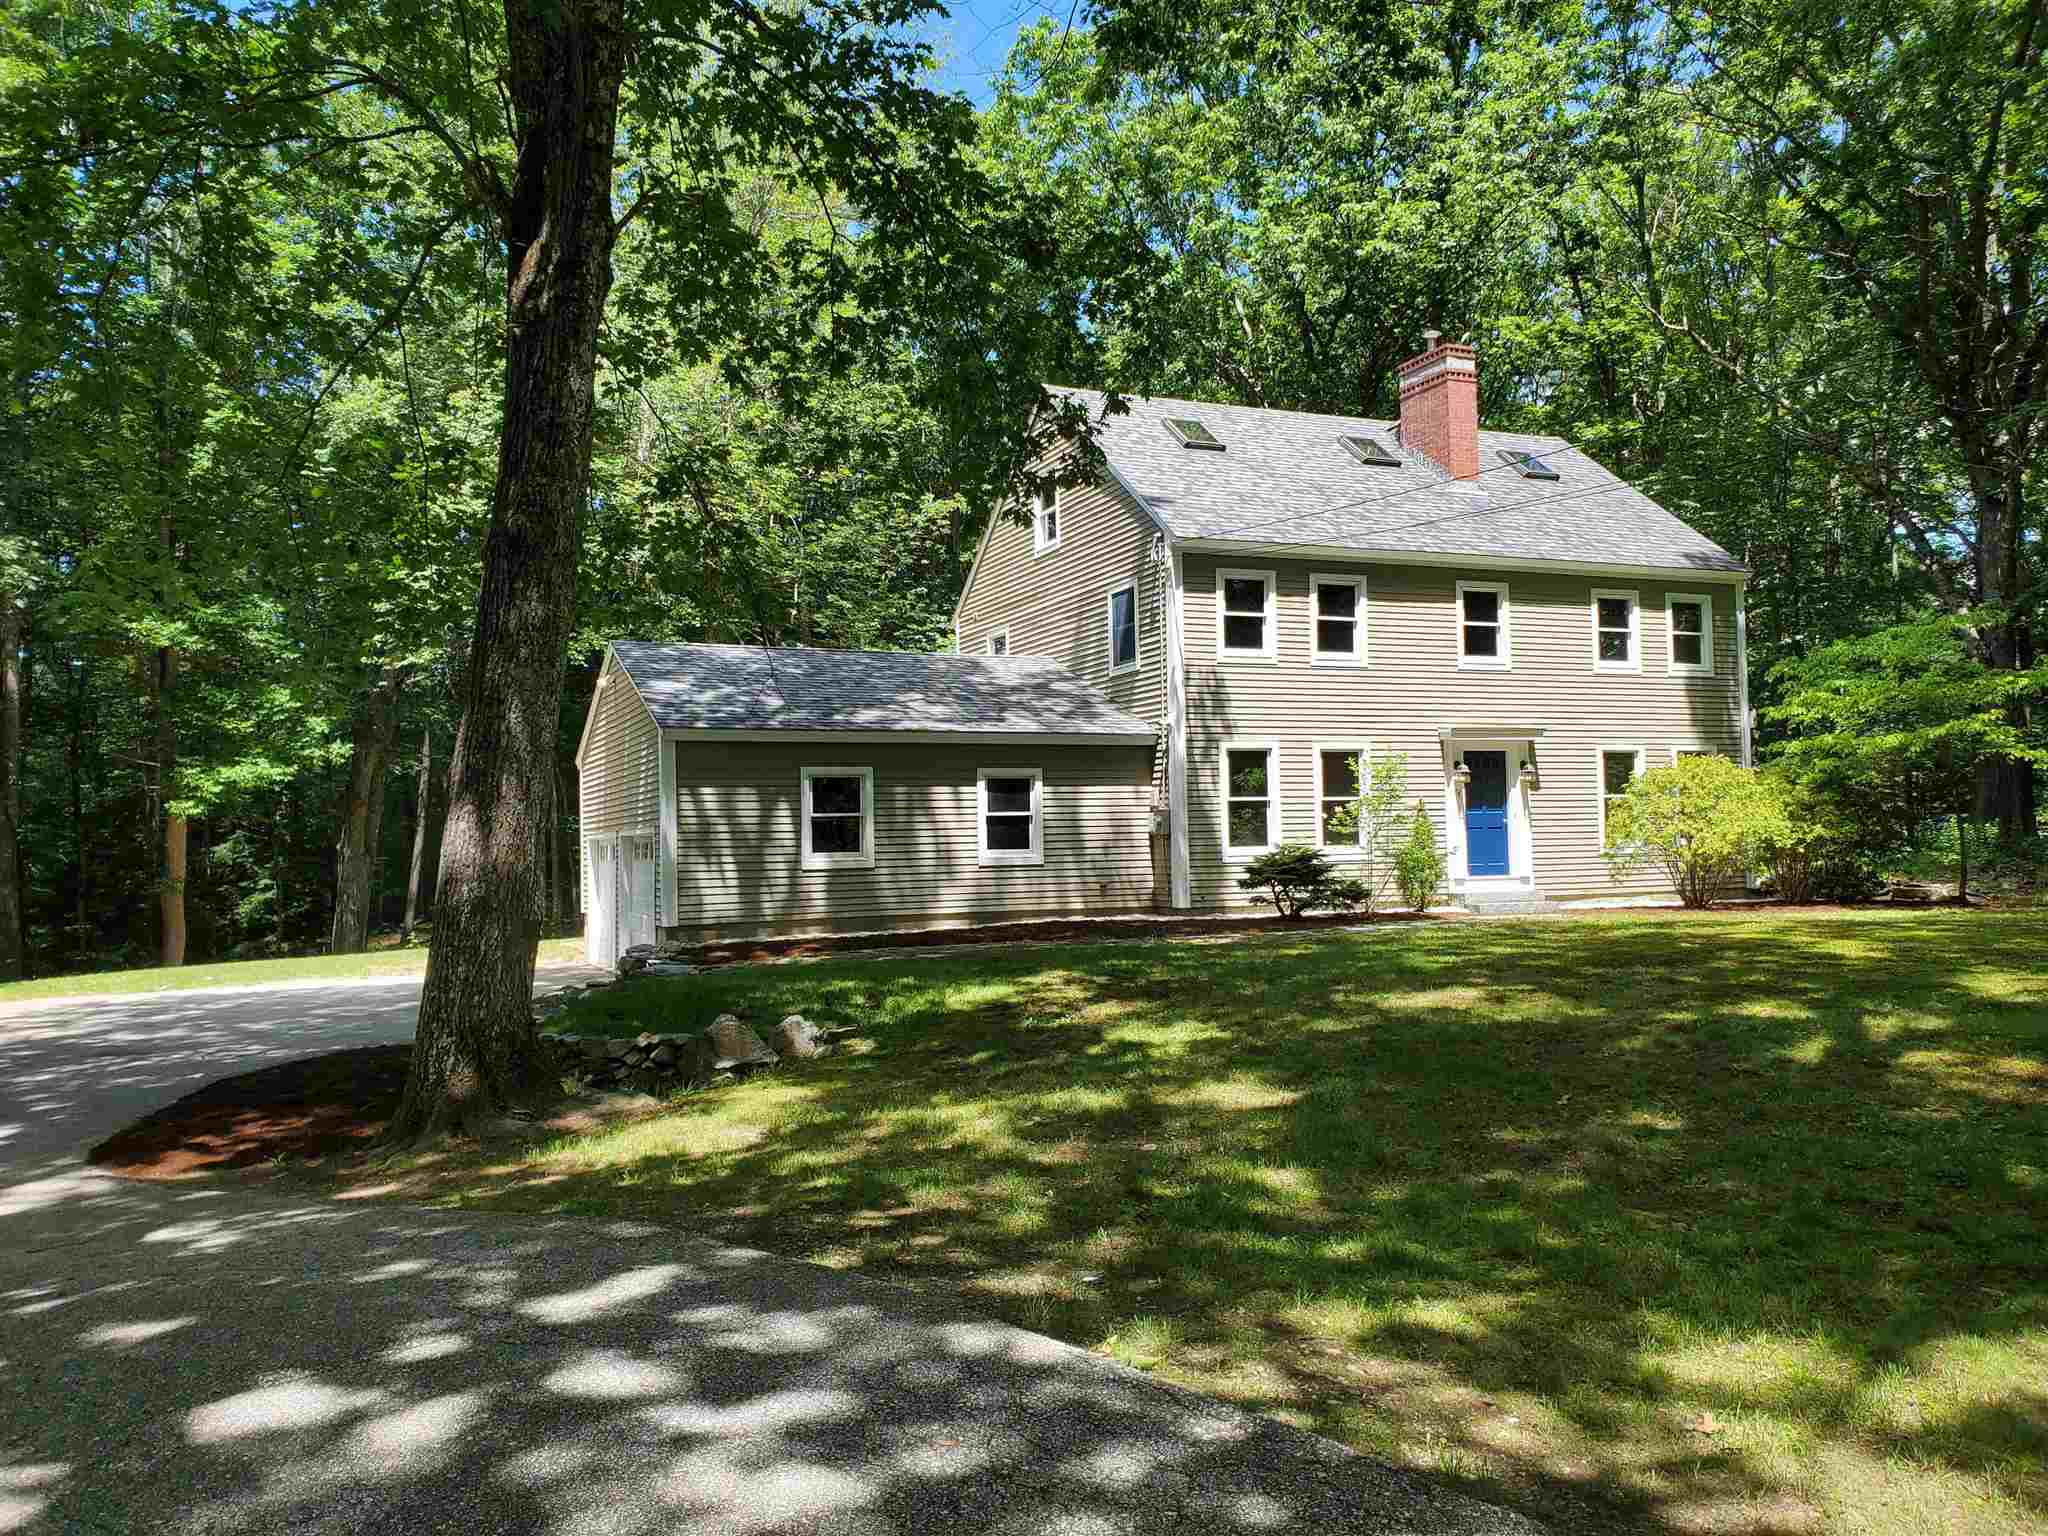 Photo of 74 Piscassic Road Newfields NH 03856